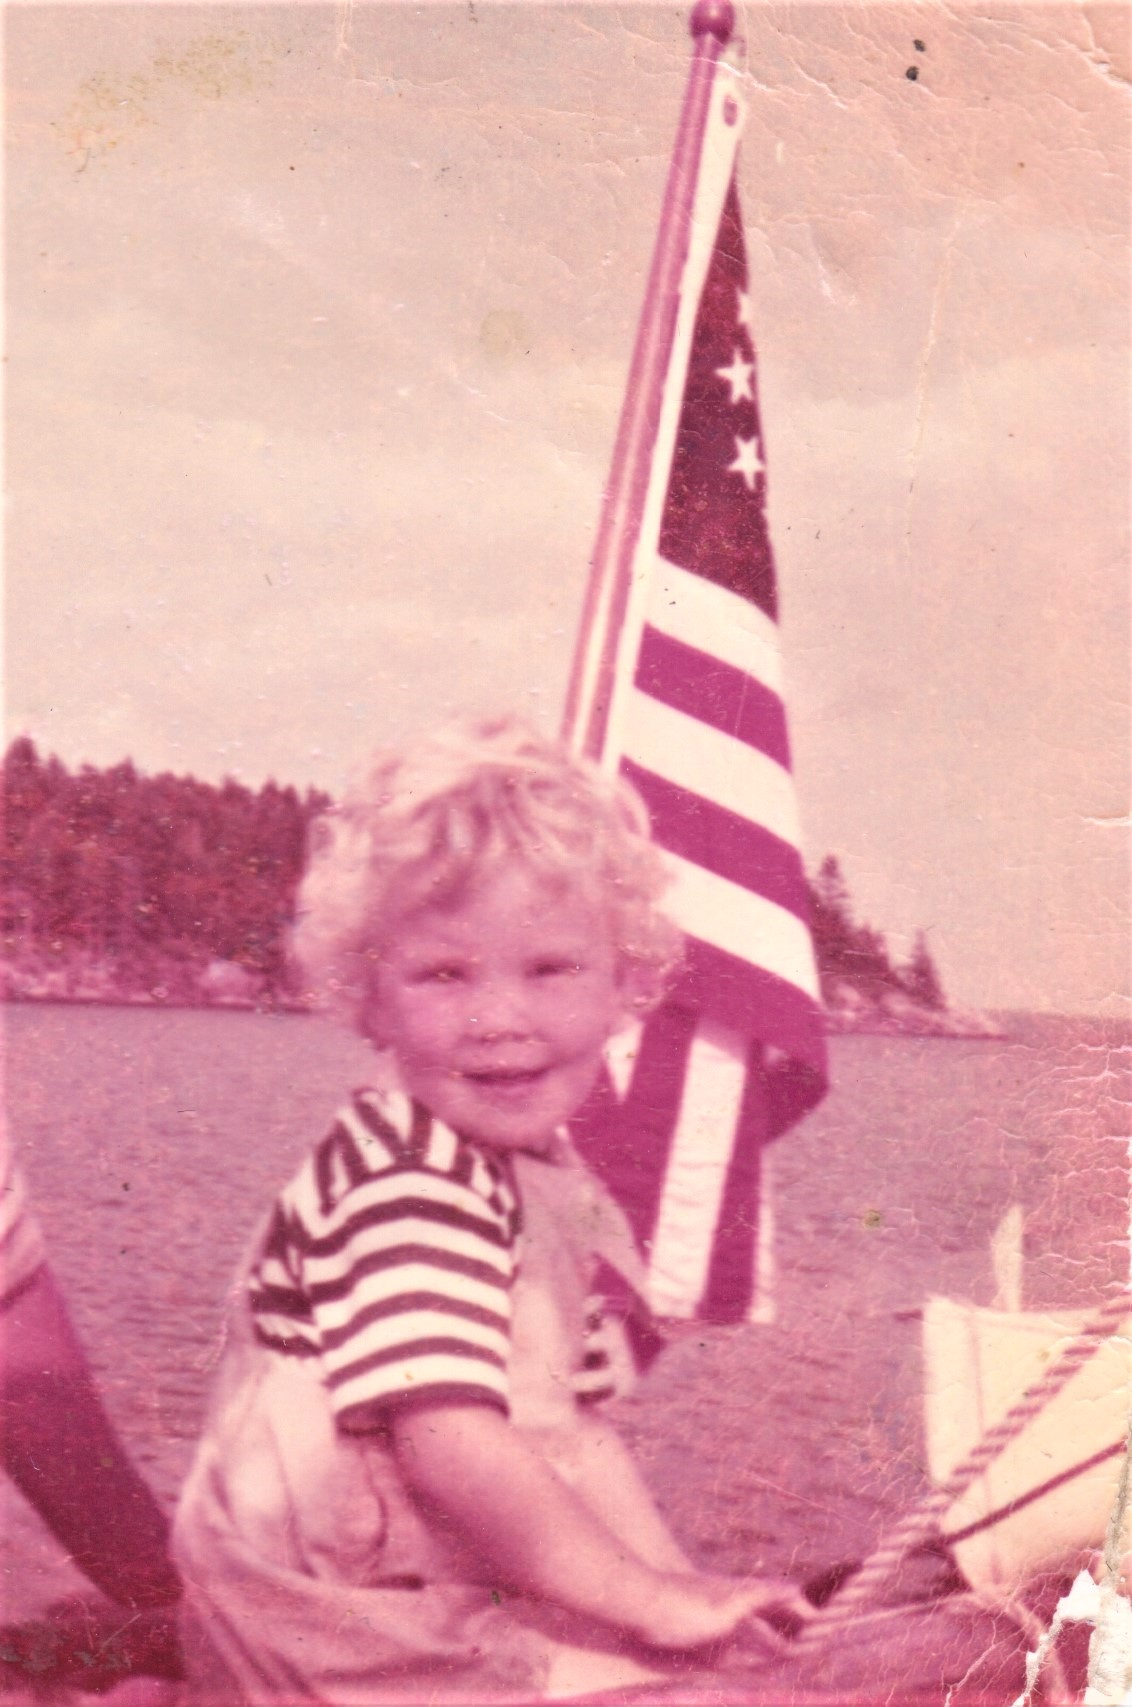 With American Flag